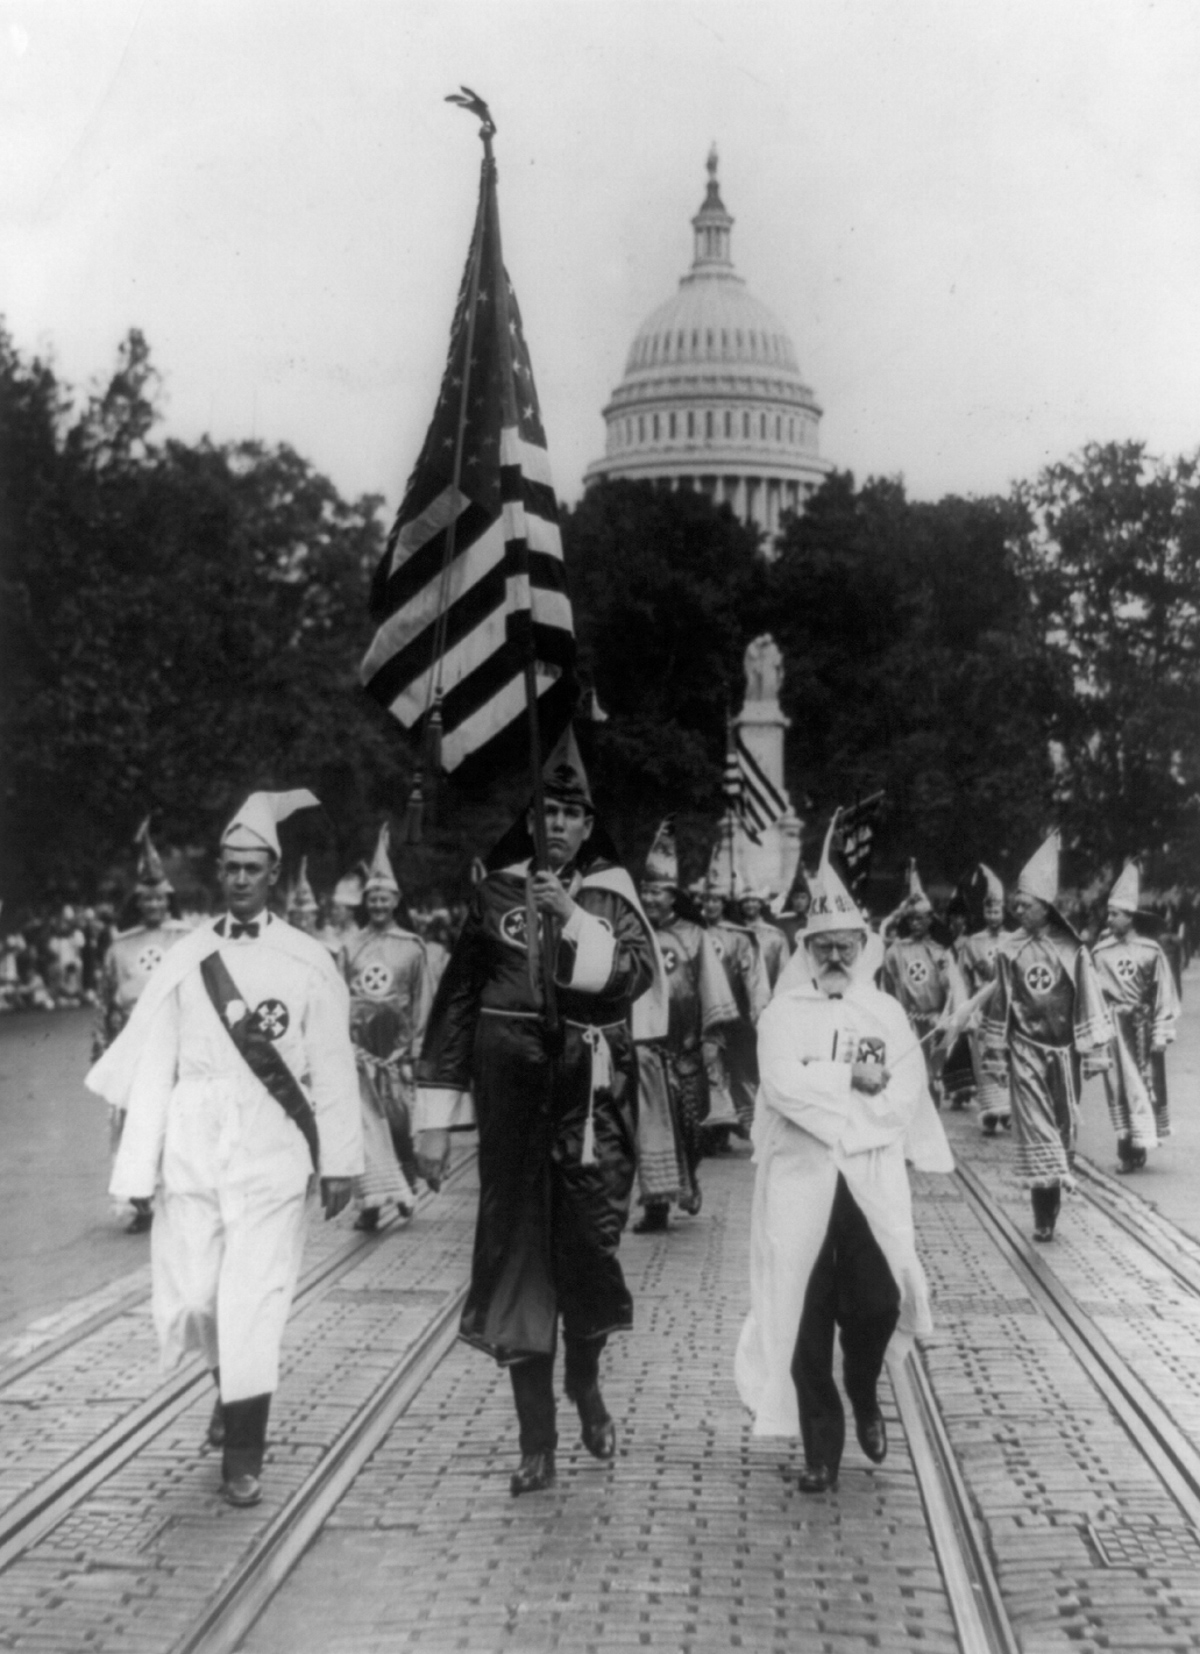 KKK_Washington_1926_002